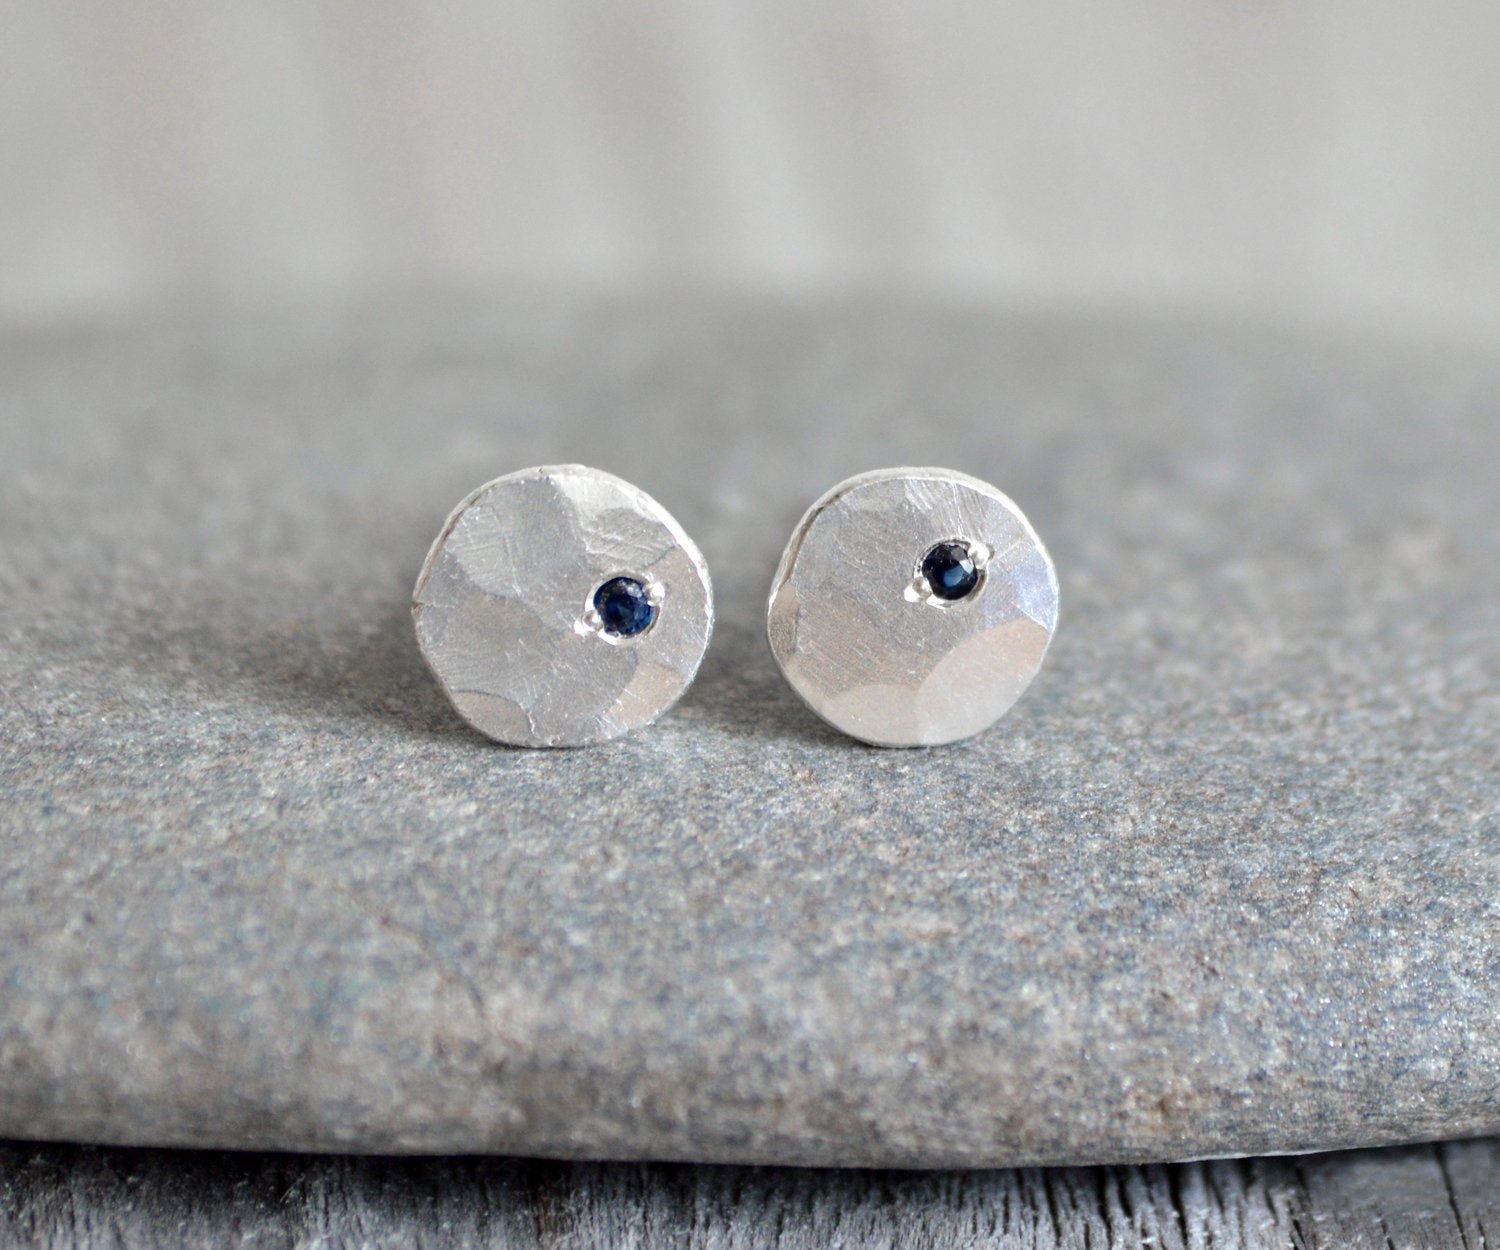 10f1dd951 Rustic Stud Earrings with Sapphires, Recycled Sterling Silver Earring ...